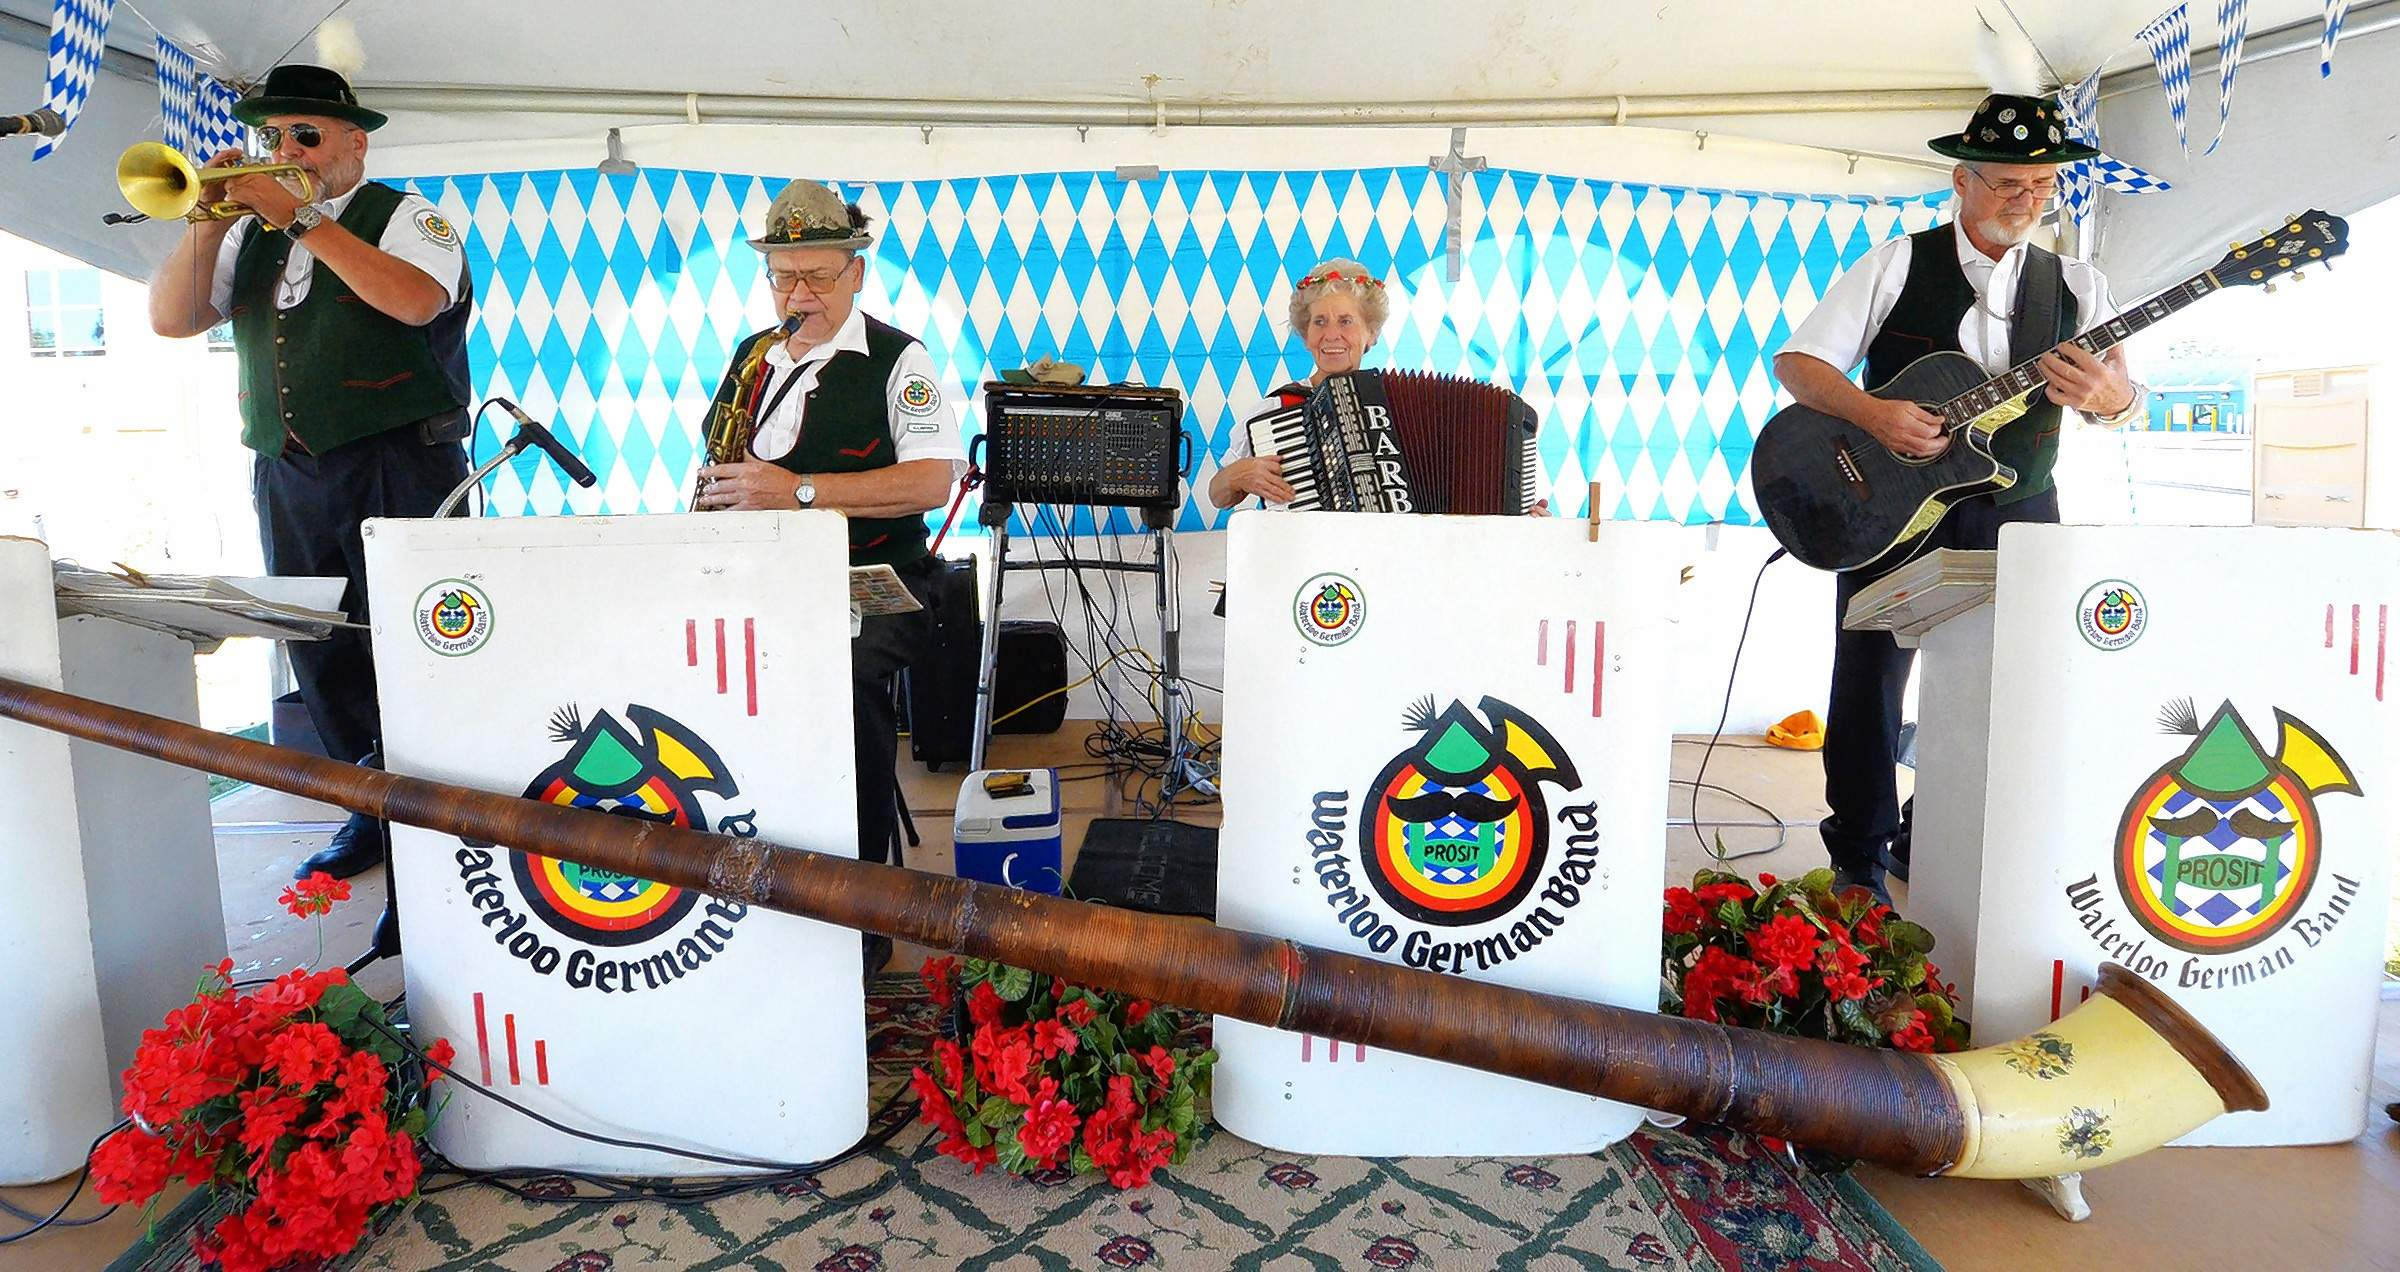 Above, members of the Waterloo German Band provided a musical backdrop for those who attended Saturday's Oktoberfest at Marion's Zion United Church of Christ. Left, Church member Gene Ruehmkorff was busy at the grill Saturday cooking applewurst sausages for the hundreds of hungry guests.